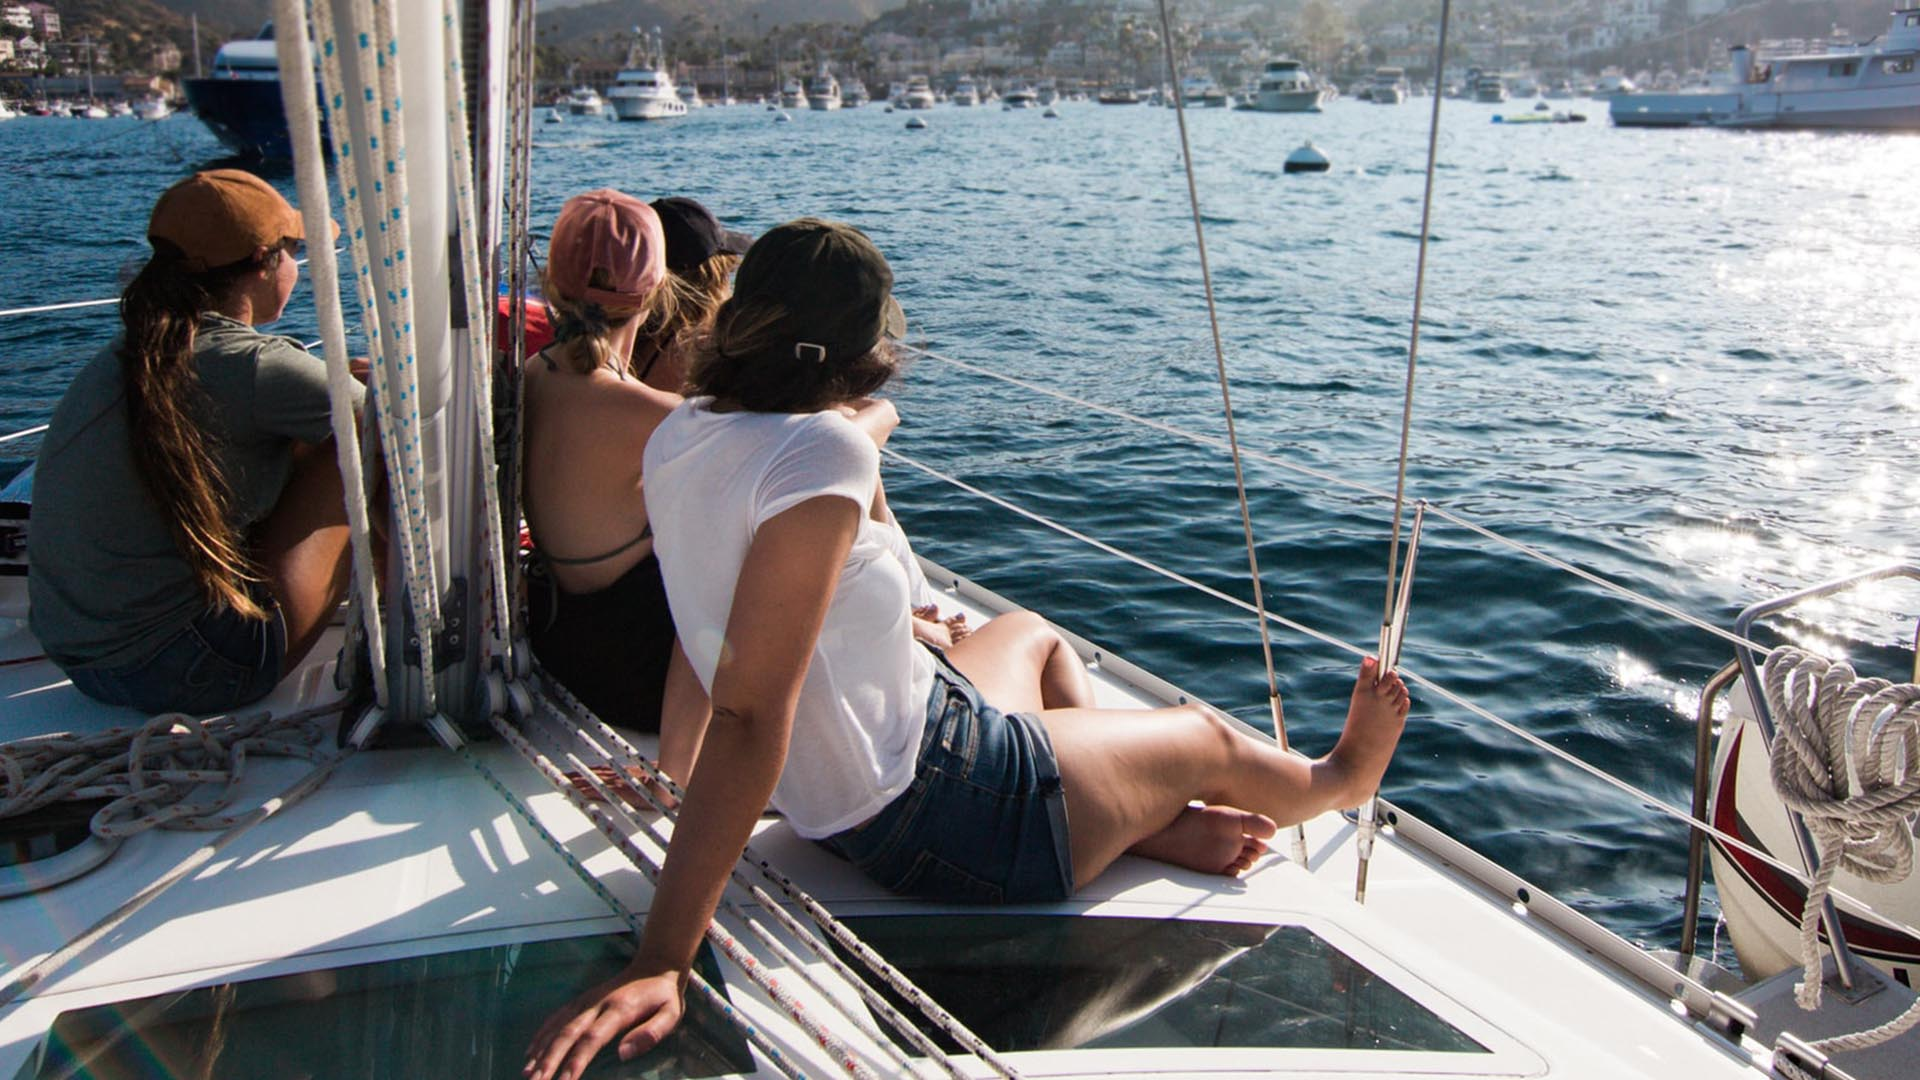 Boating Accidents: Compensation Limits And Other Considerations